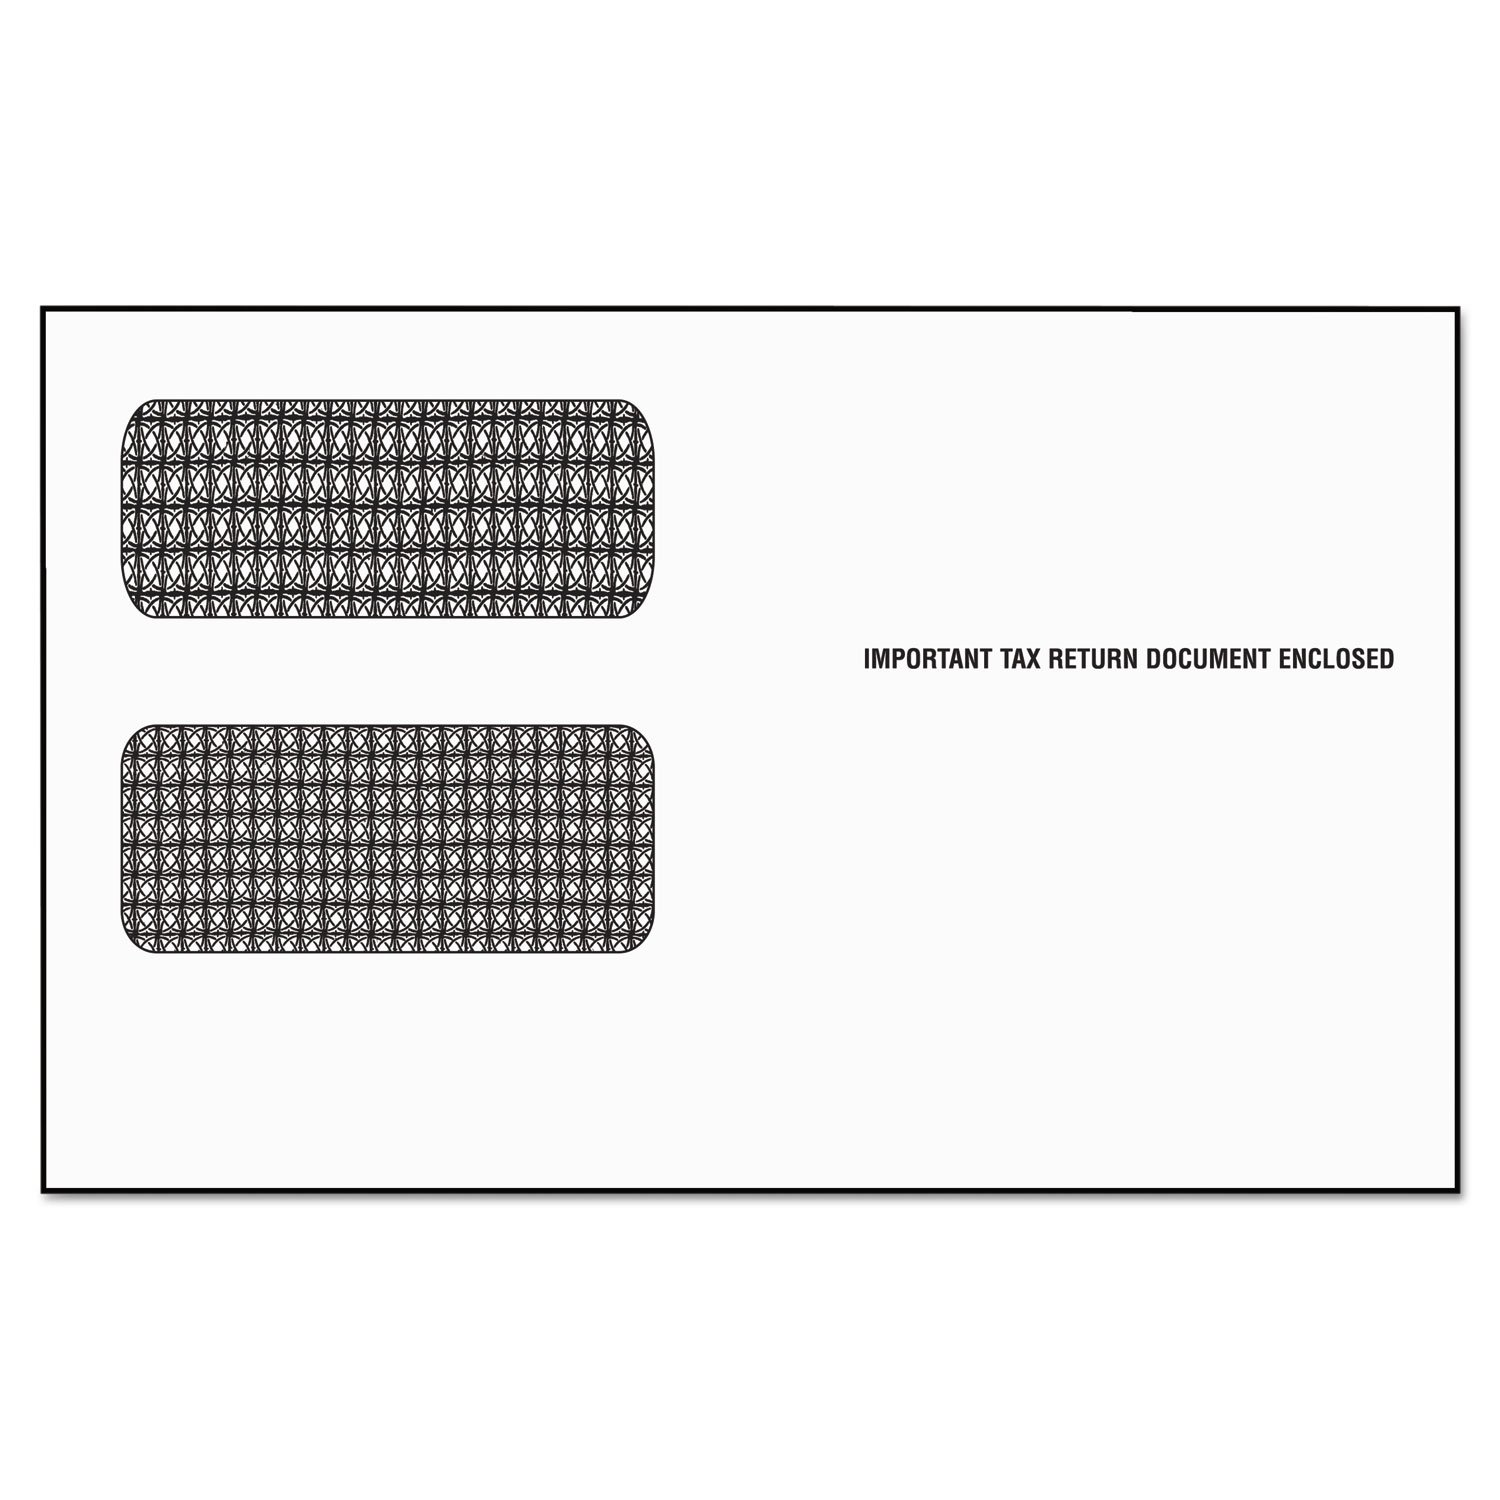 TOPS 2222ES Double Window Tax Form Envelope/1099R/Misc Forms, Self-Seal, 9 x 5 5/8 (Pack of 24)